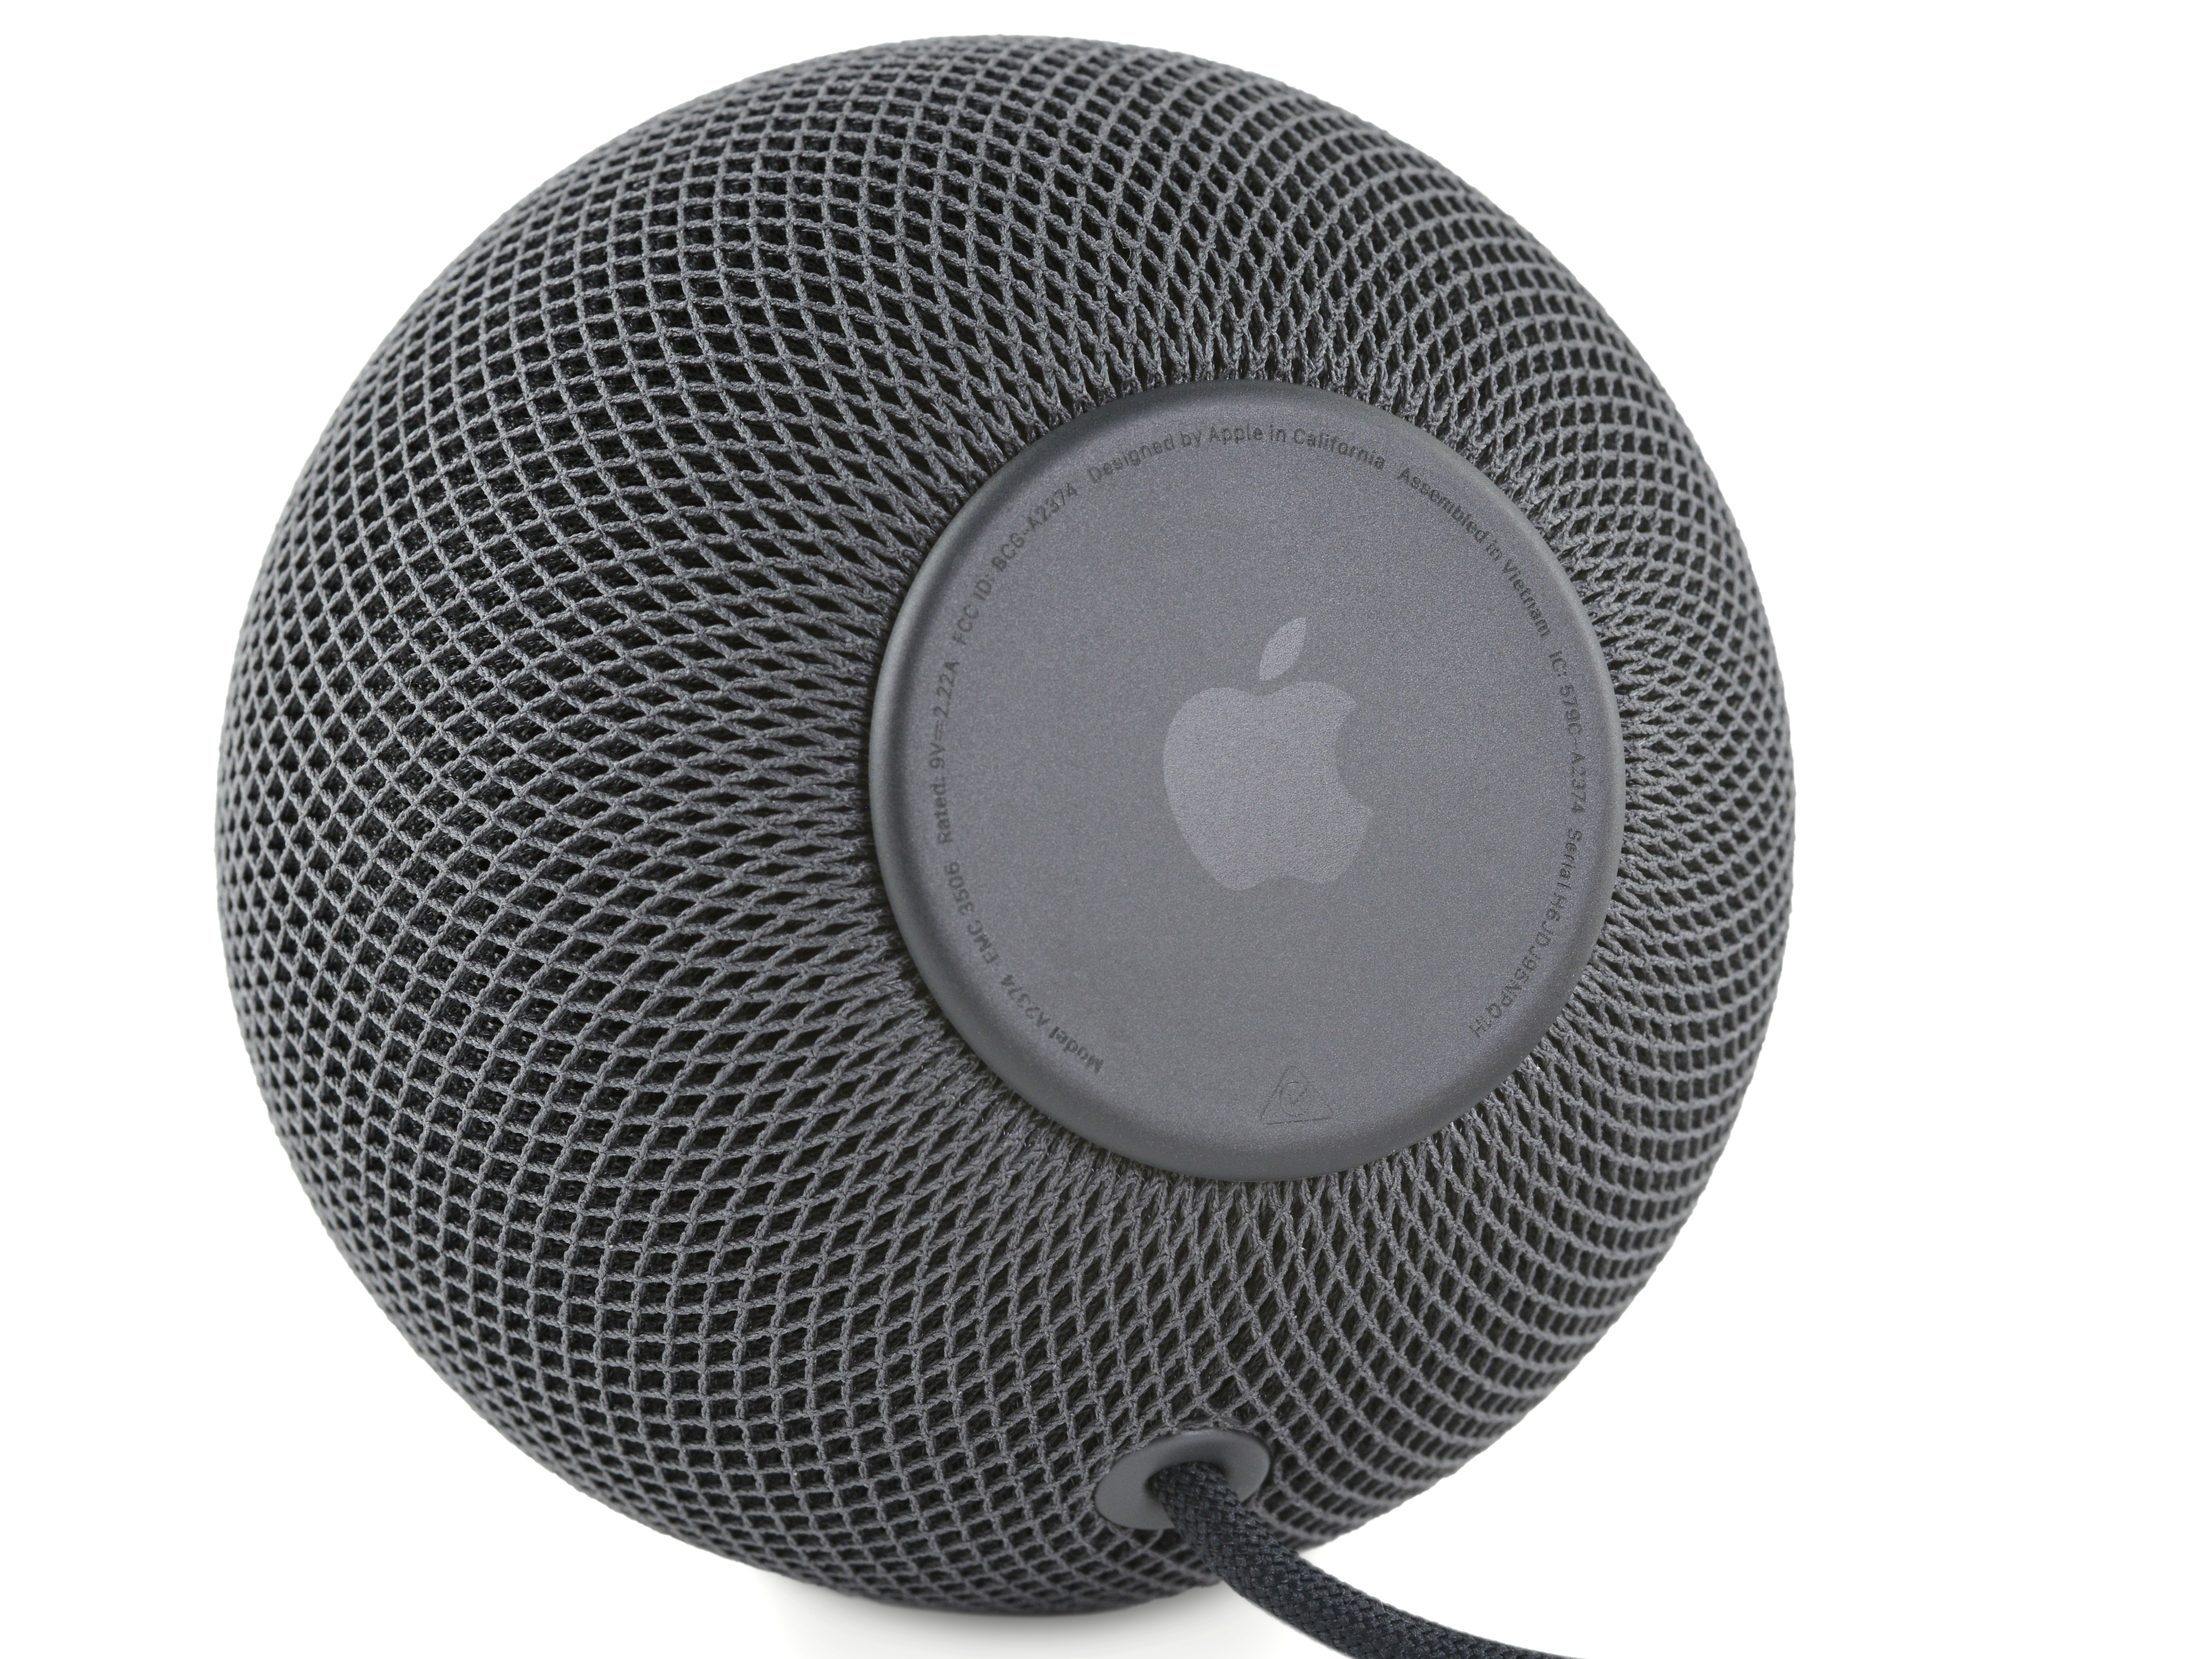 The bottom of the HomePod Mini, with its Apple-branded rubber foot..